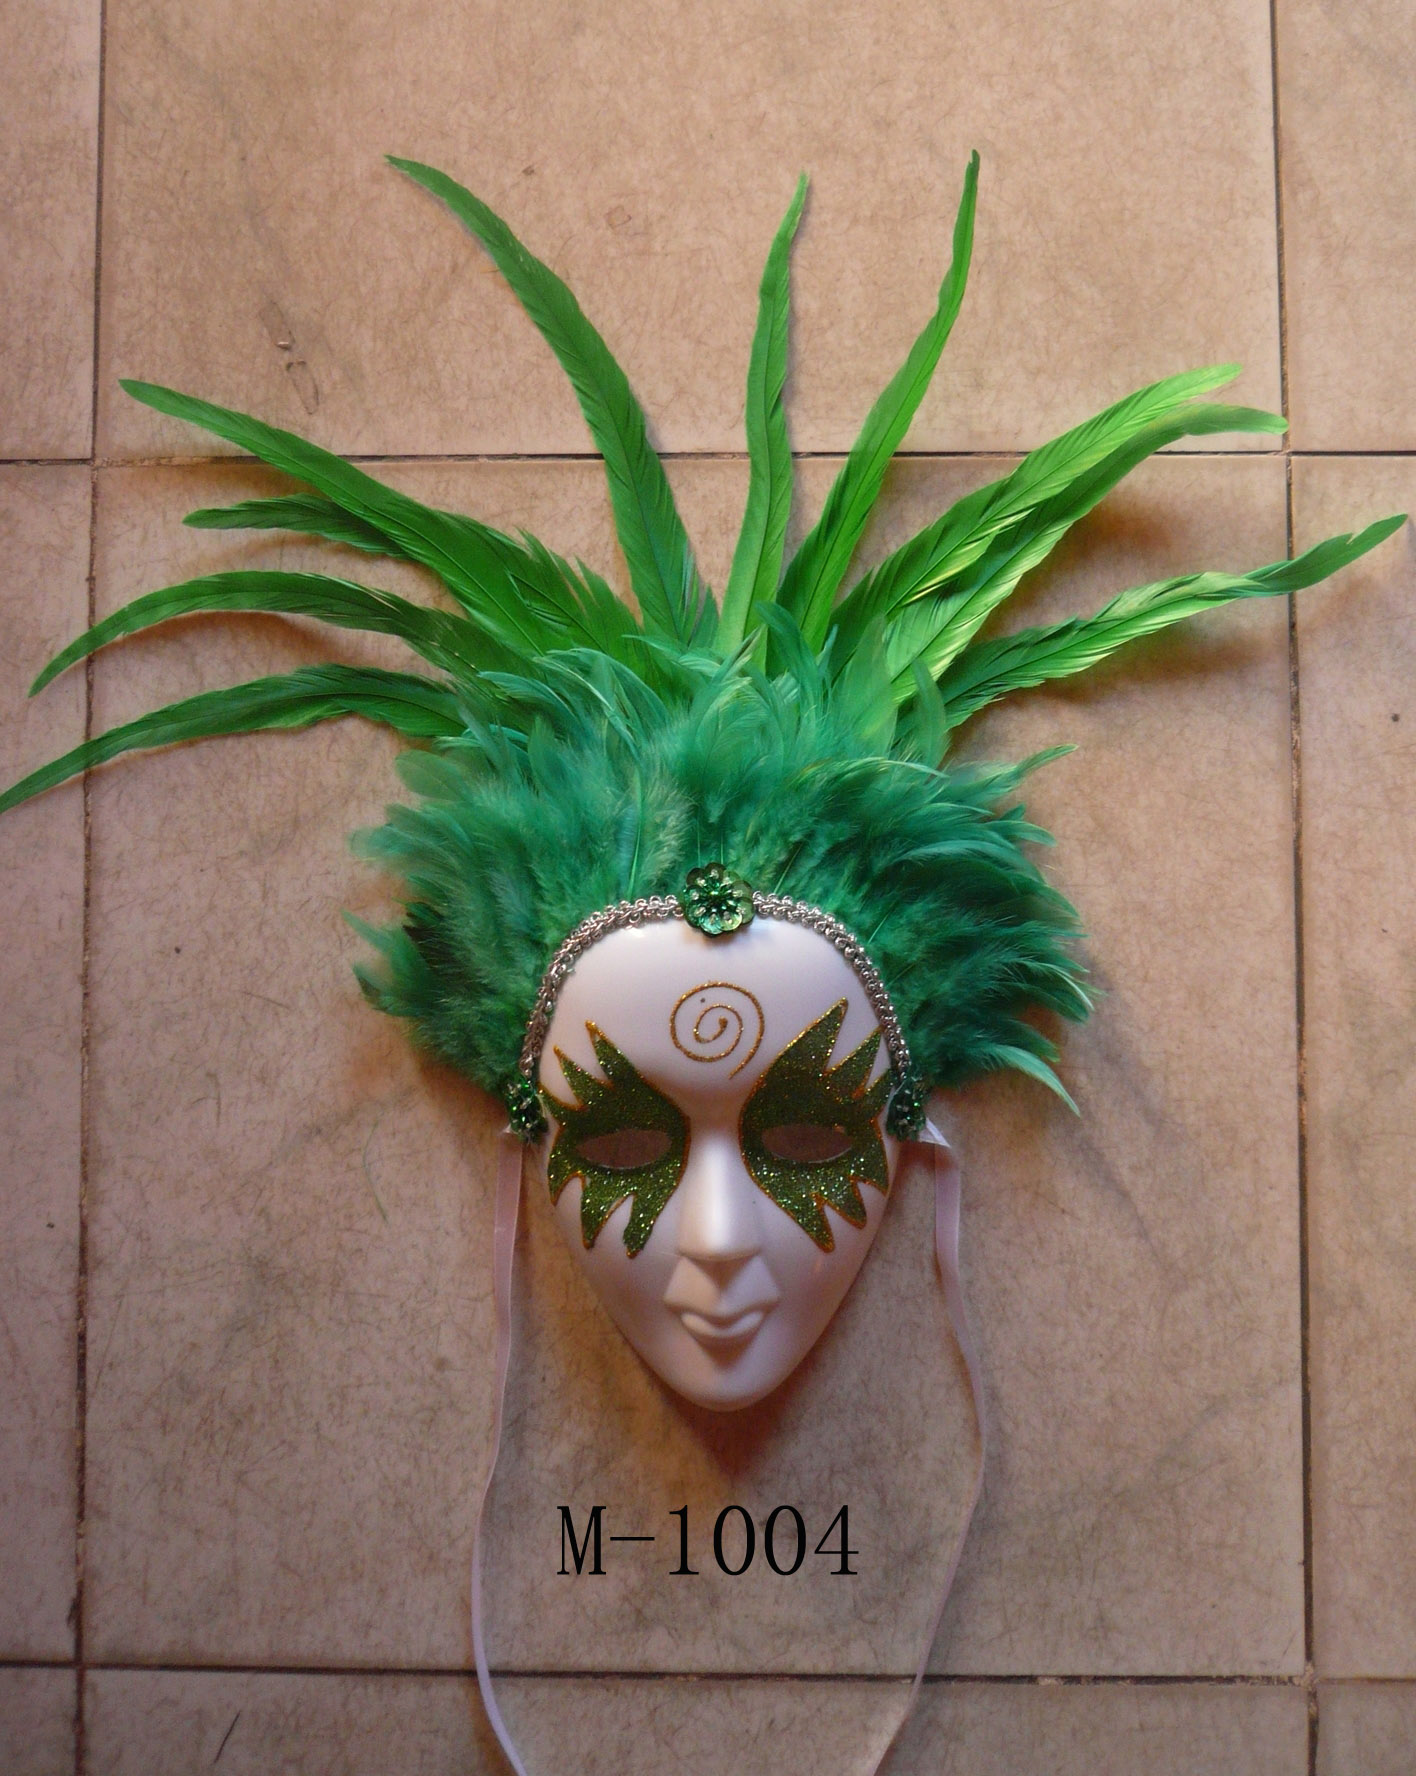 Cheap feather masks for sale - Made in China M-1004